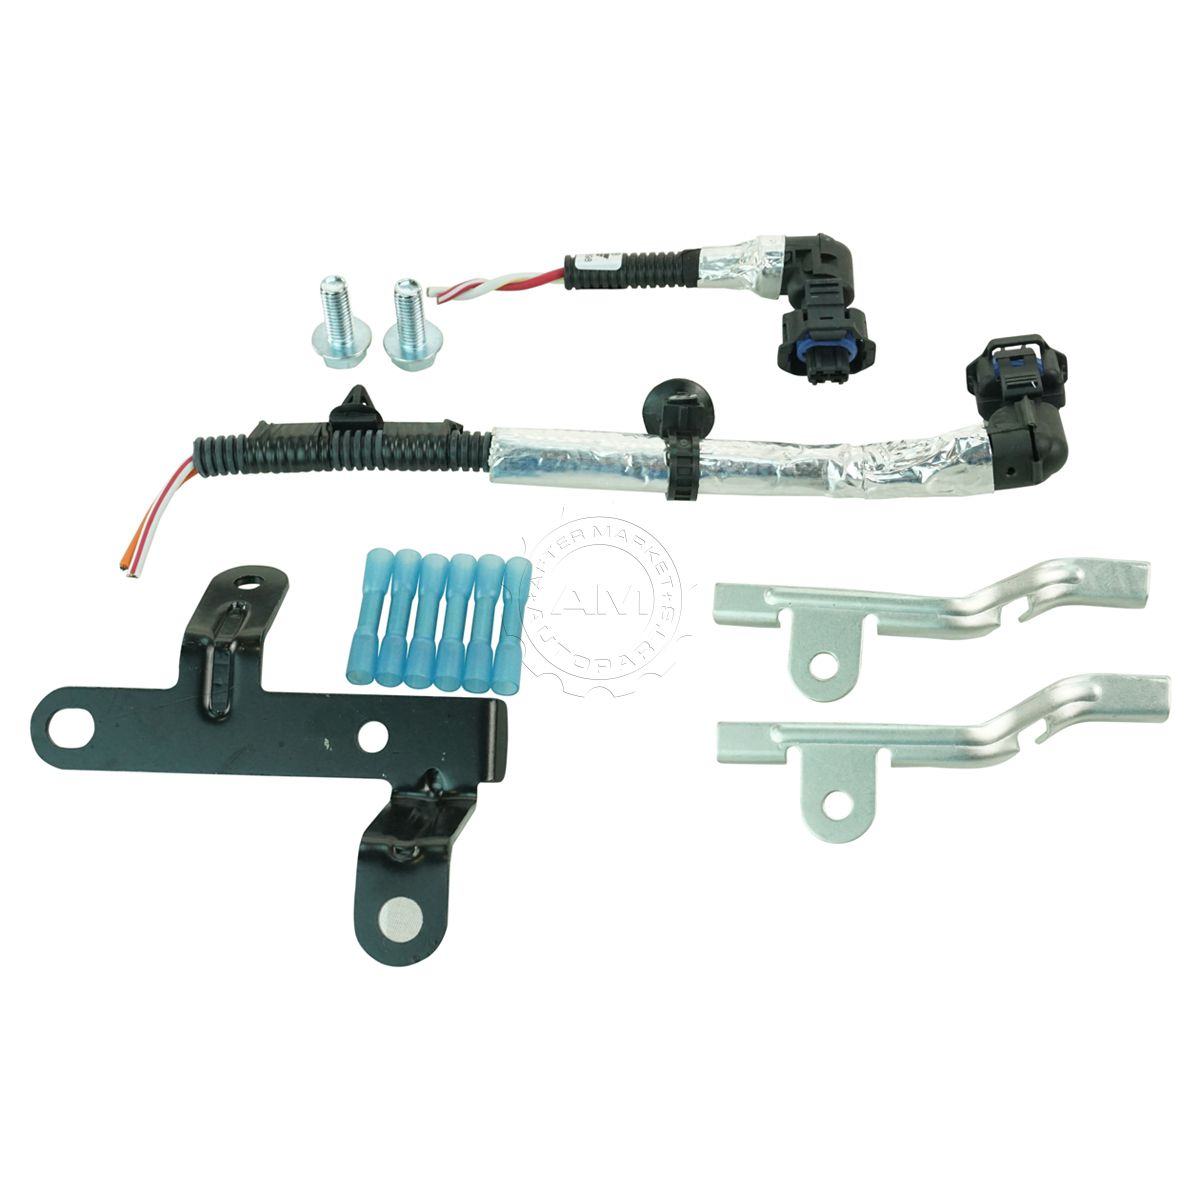 hight resolution of dorman fuel injector wiring harness repair kit updated design for duramax diesel